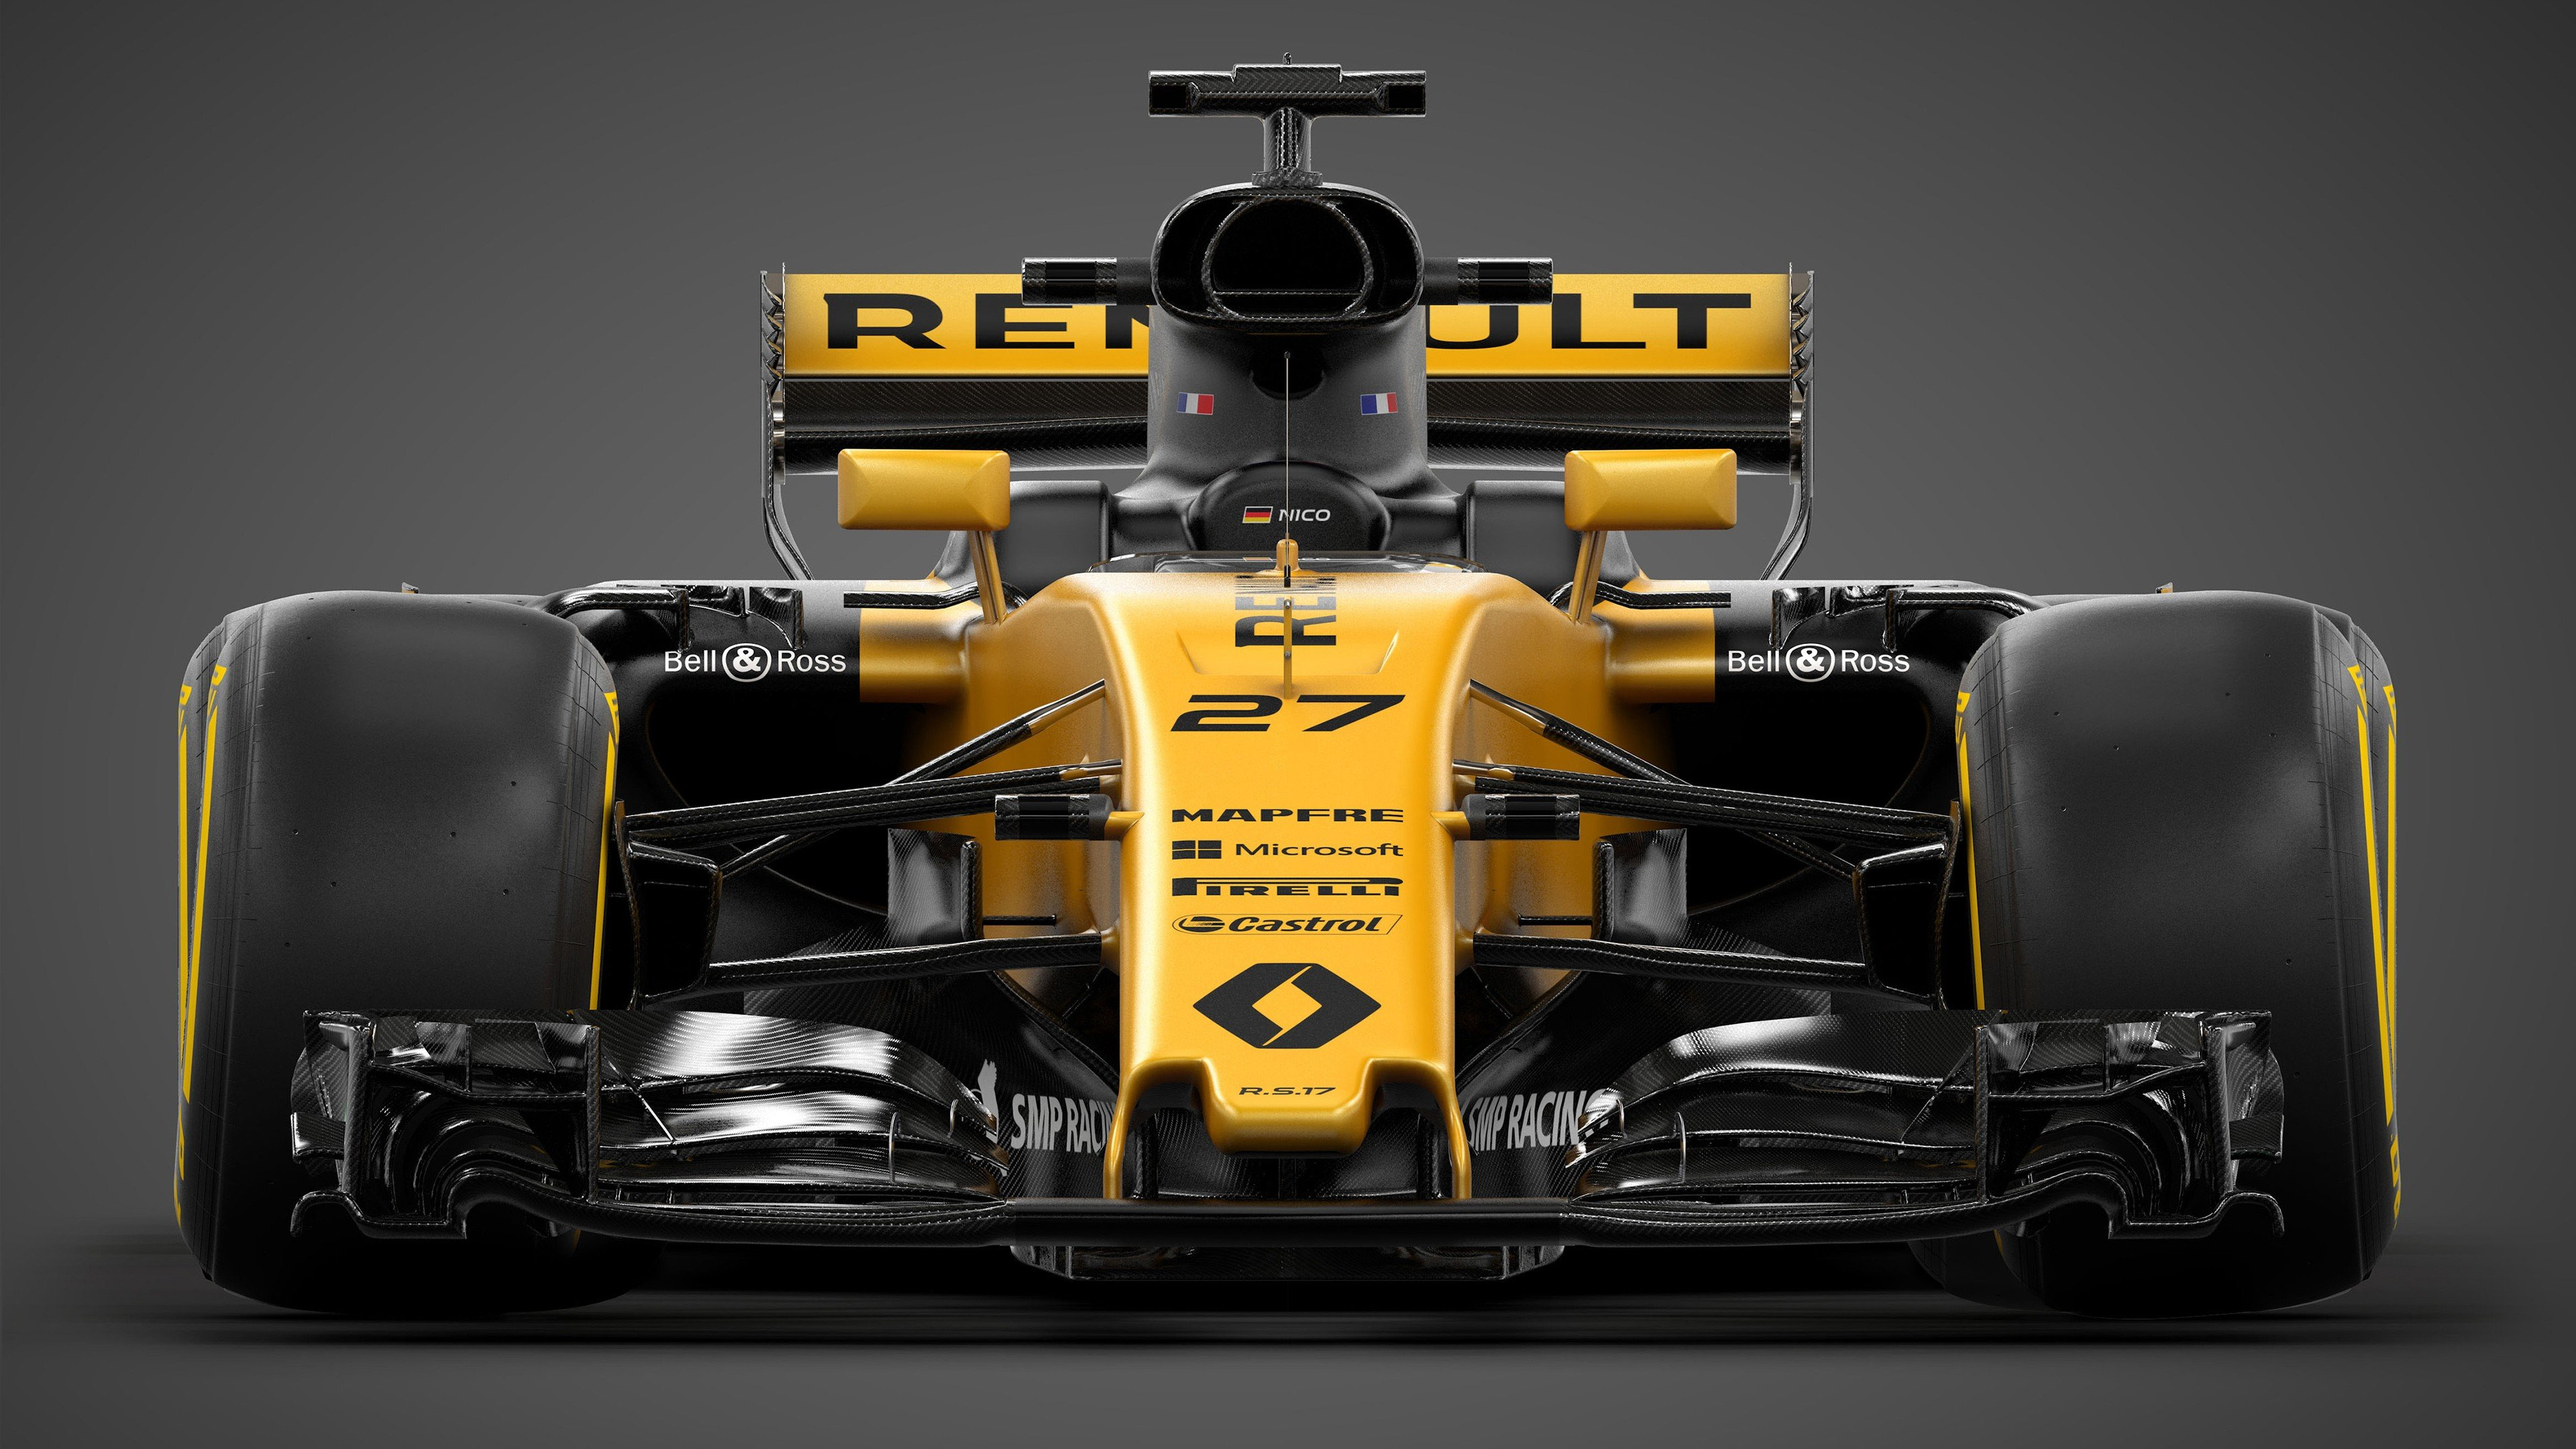 RENAULT RS FORMULA ONE wallpaper